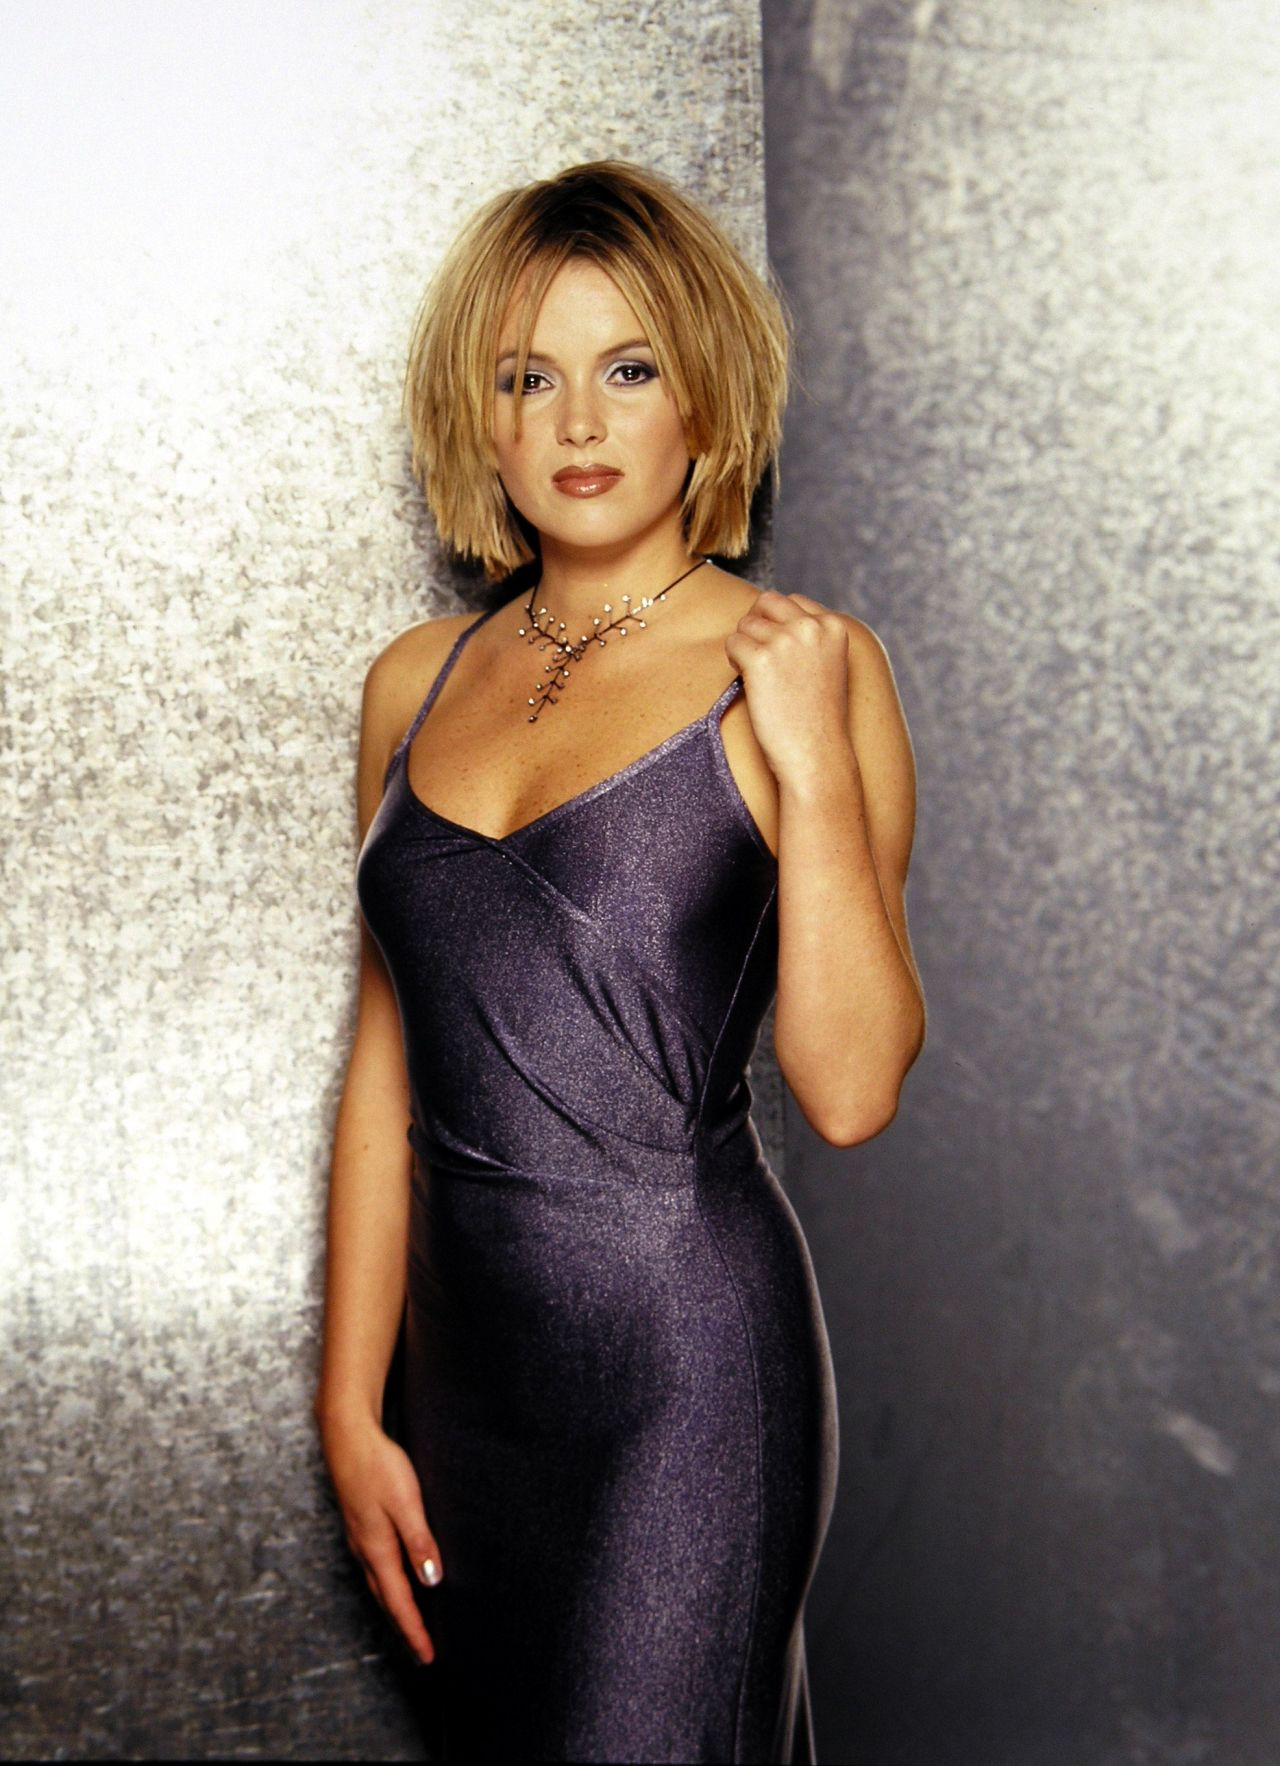 amanda-holden-hot-photoshoot